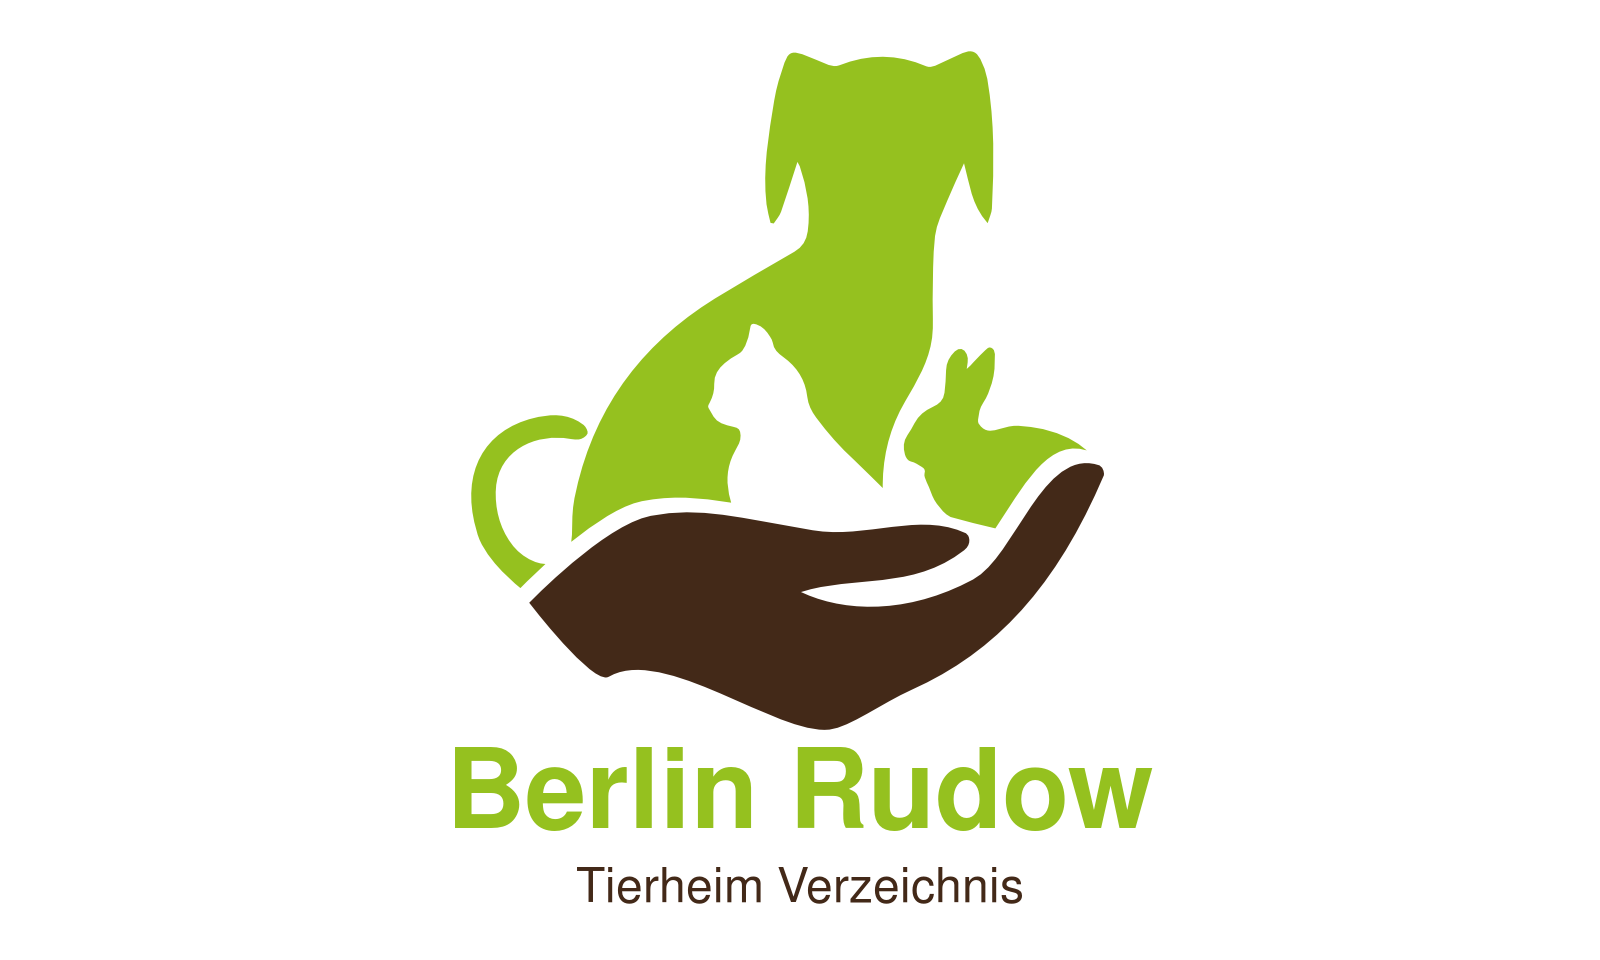 Tierheim Berlin Rudow